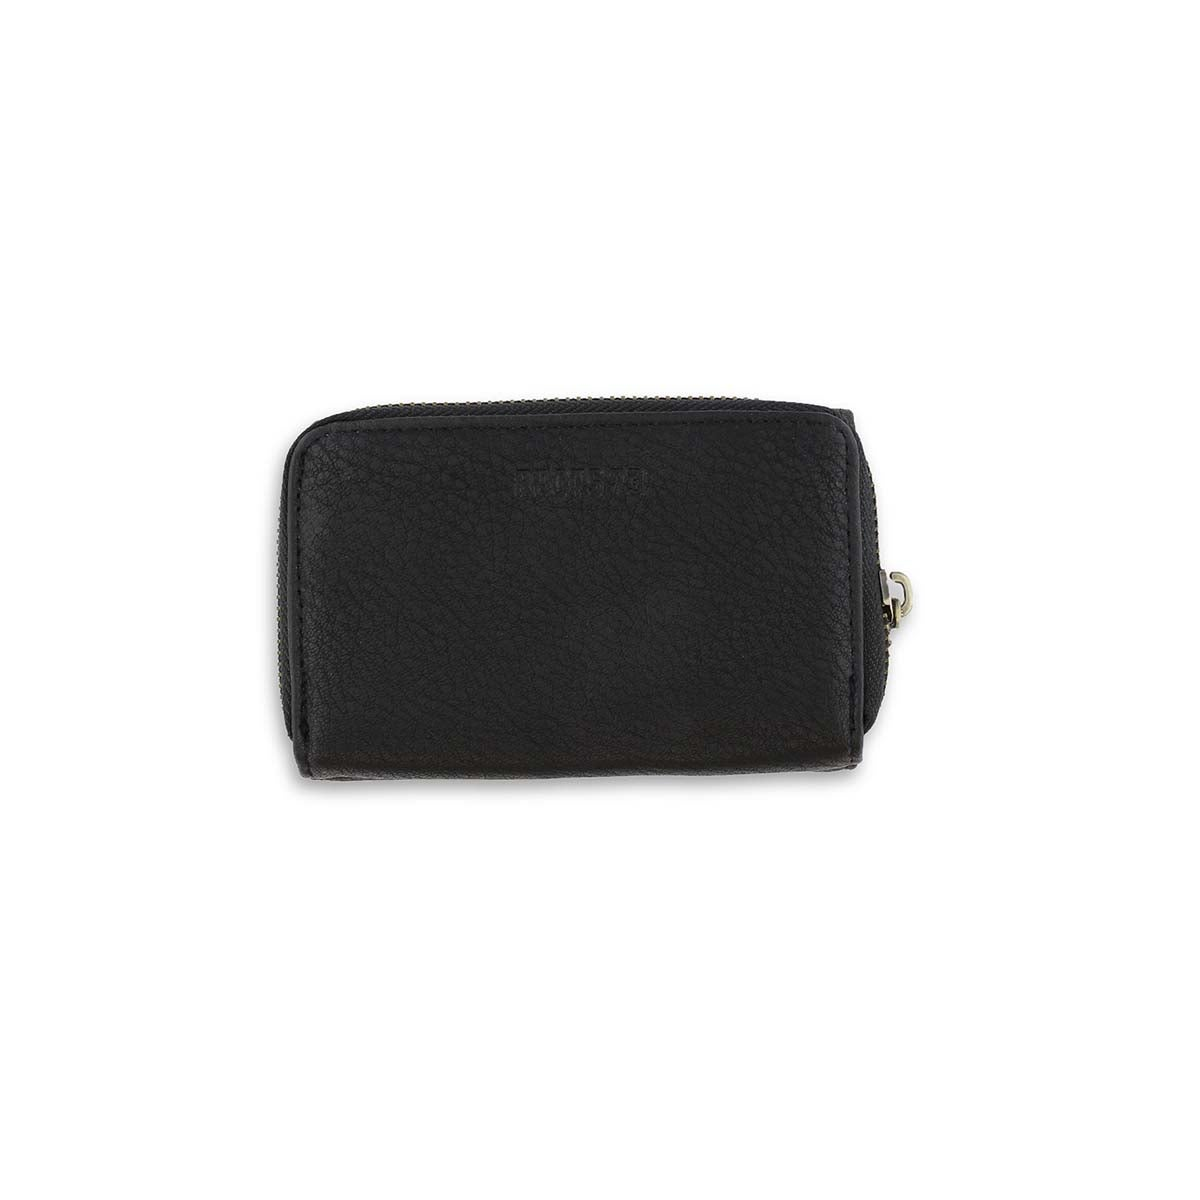 Lds Cliff black trifold wallet